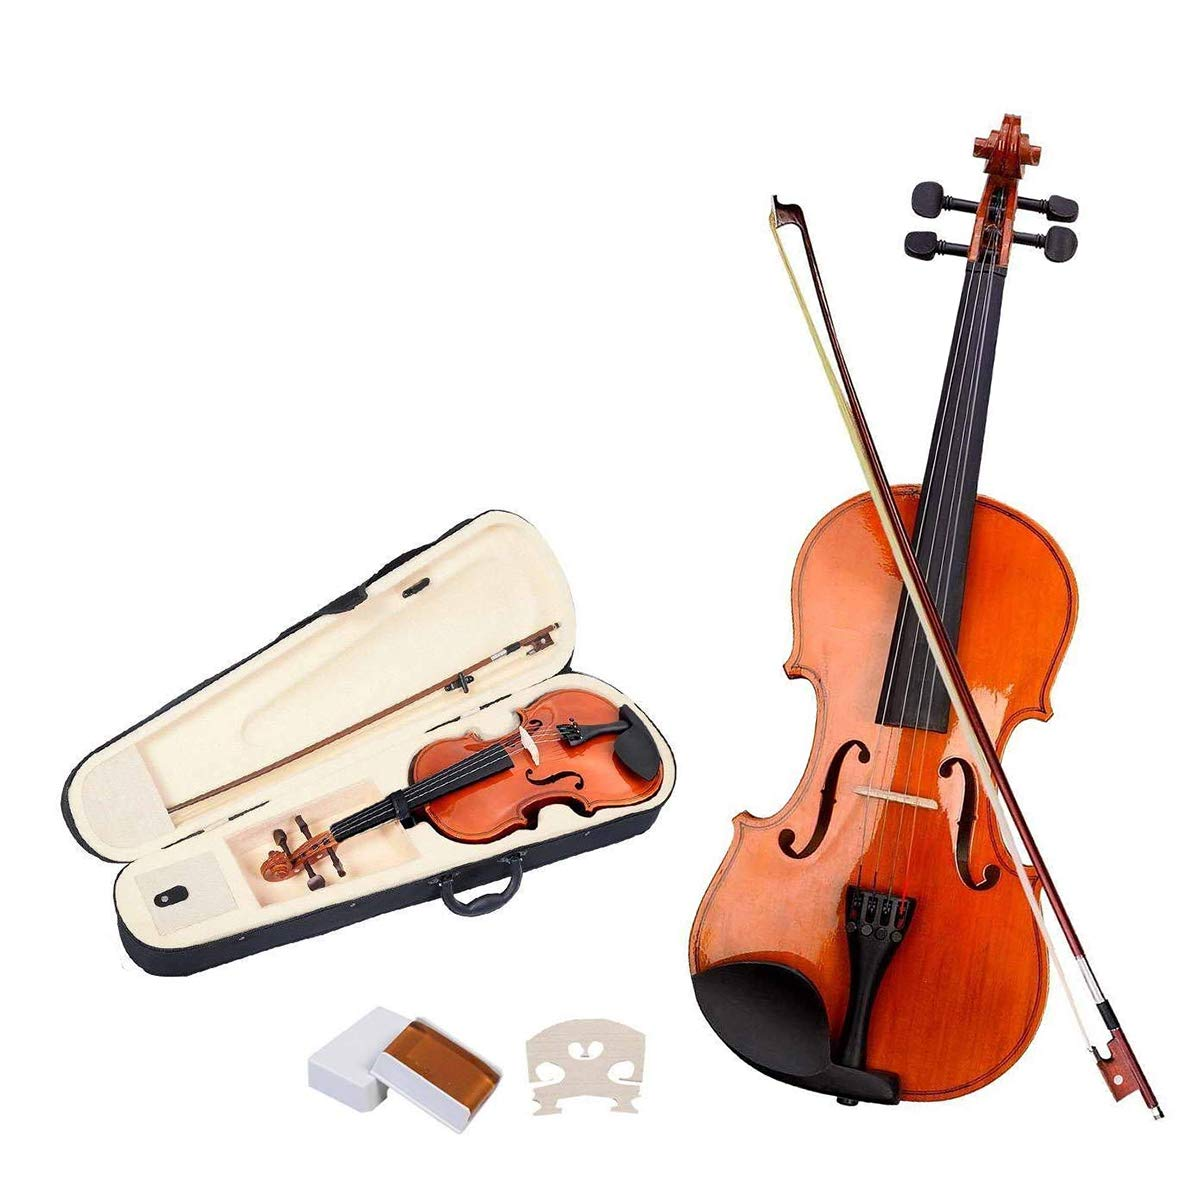 Goplus Acoustic Violin, 4/4 Full Size Solid Wood Fiddle w/Case, Bow, Rosin and Chin Rest for Beginners and Students (burlywood)